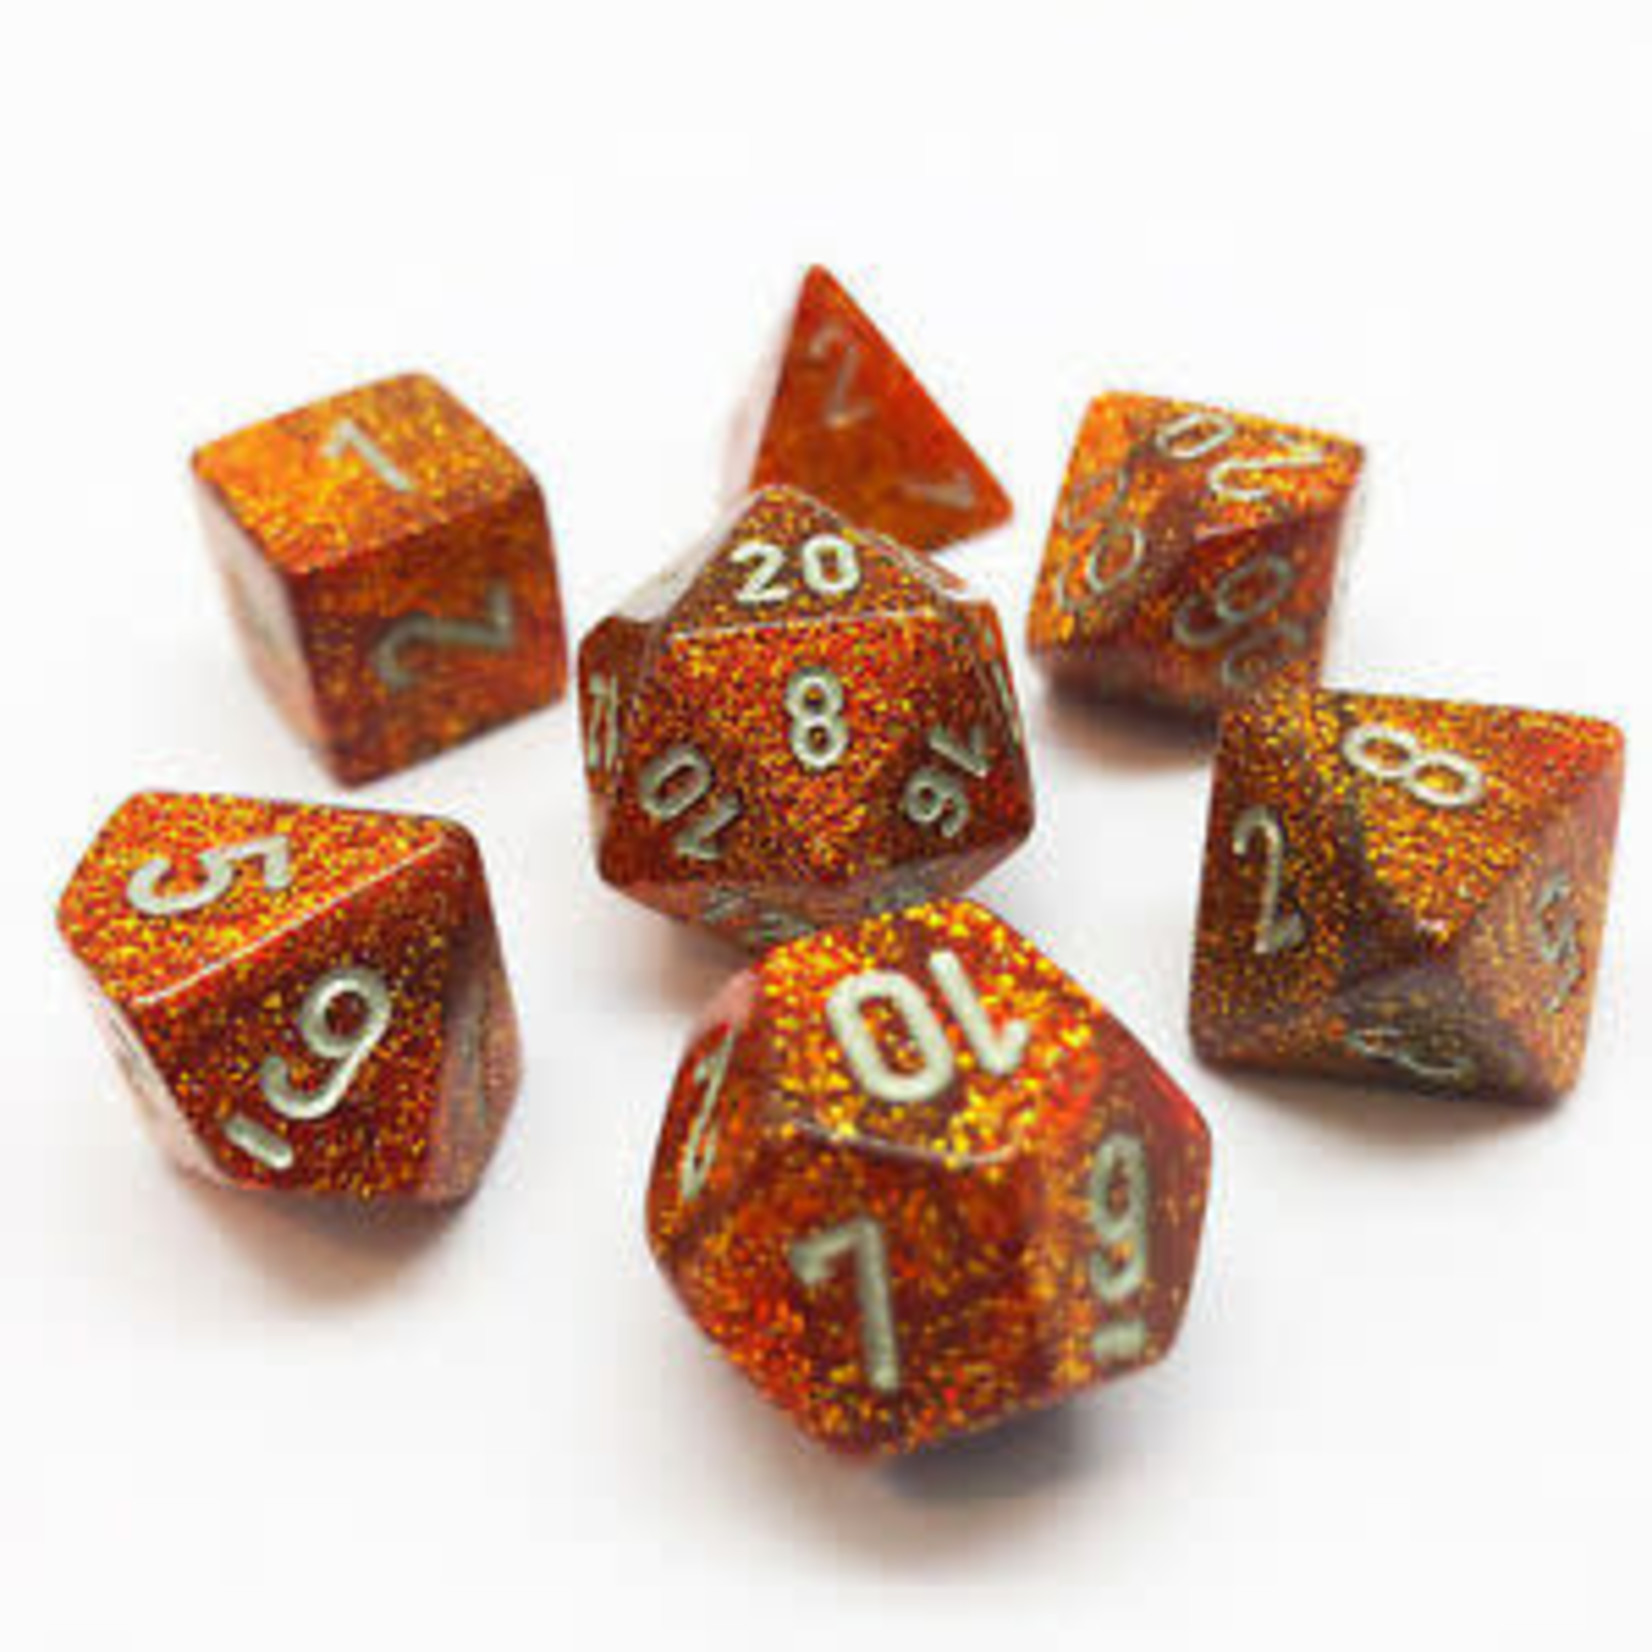 Chessex Dice: 7-Set Glitter Gold with Silver Numbers